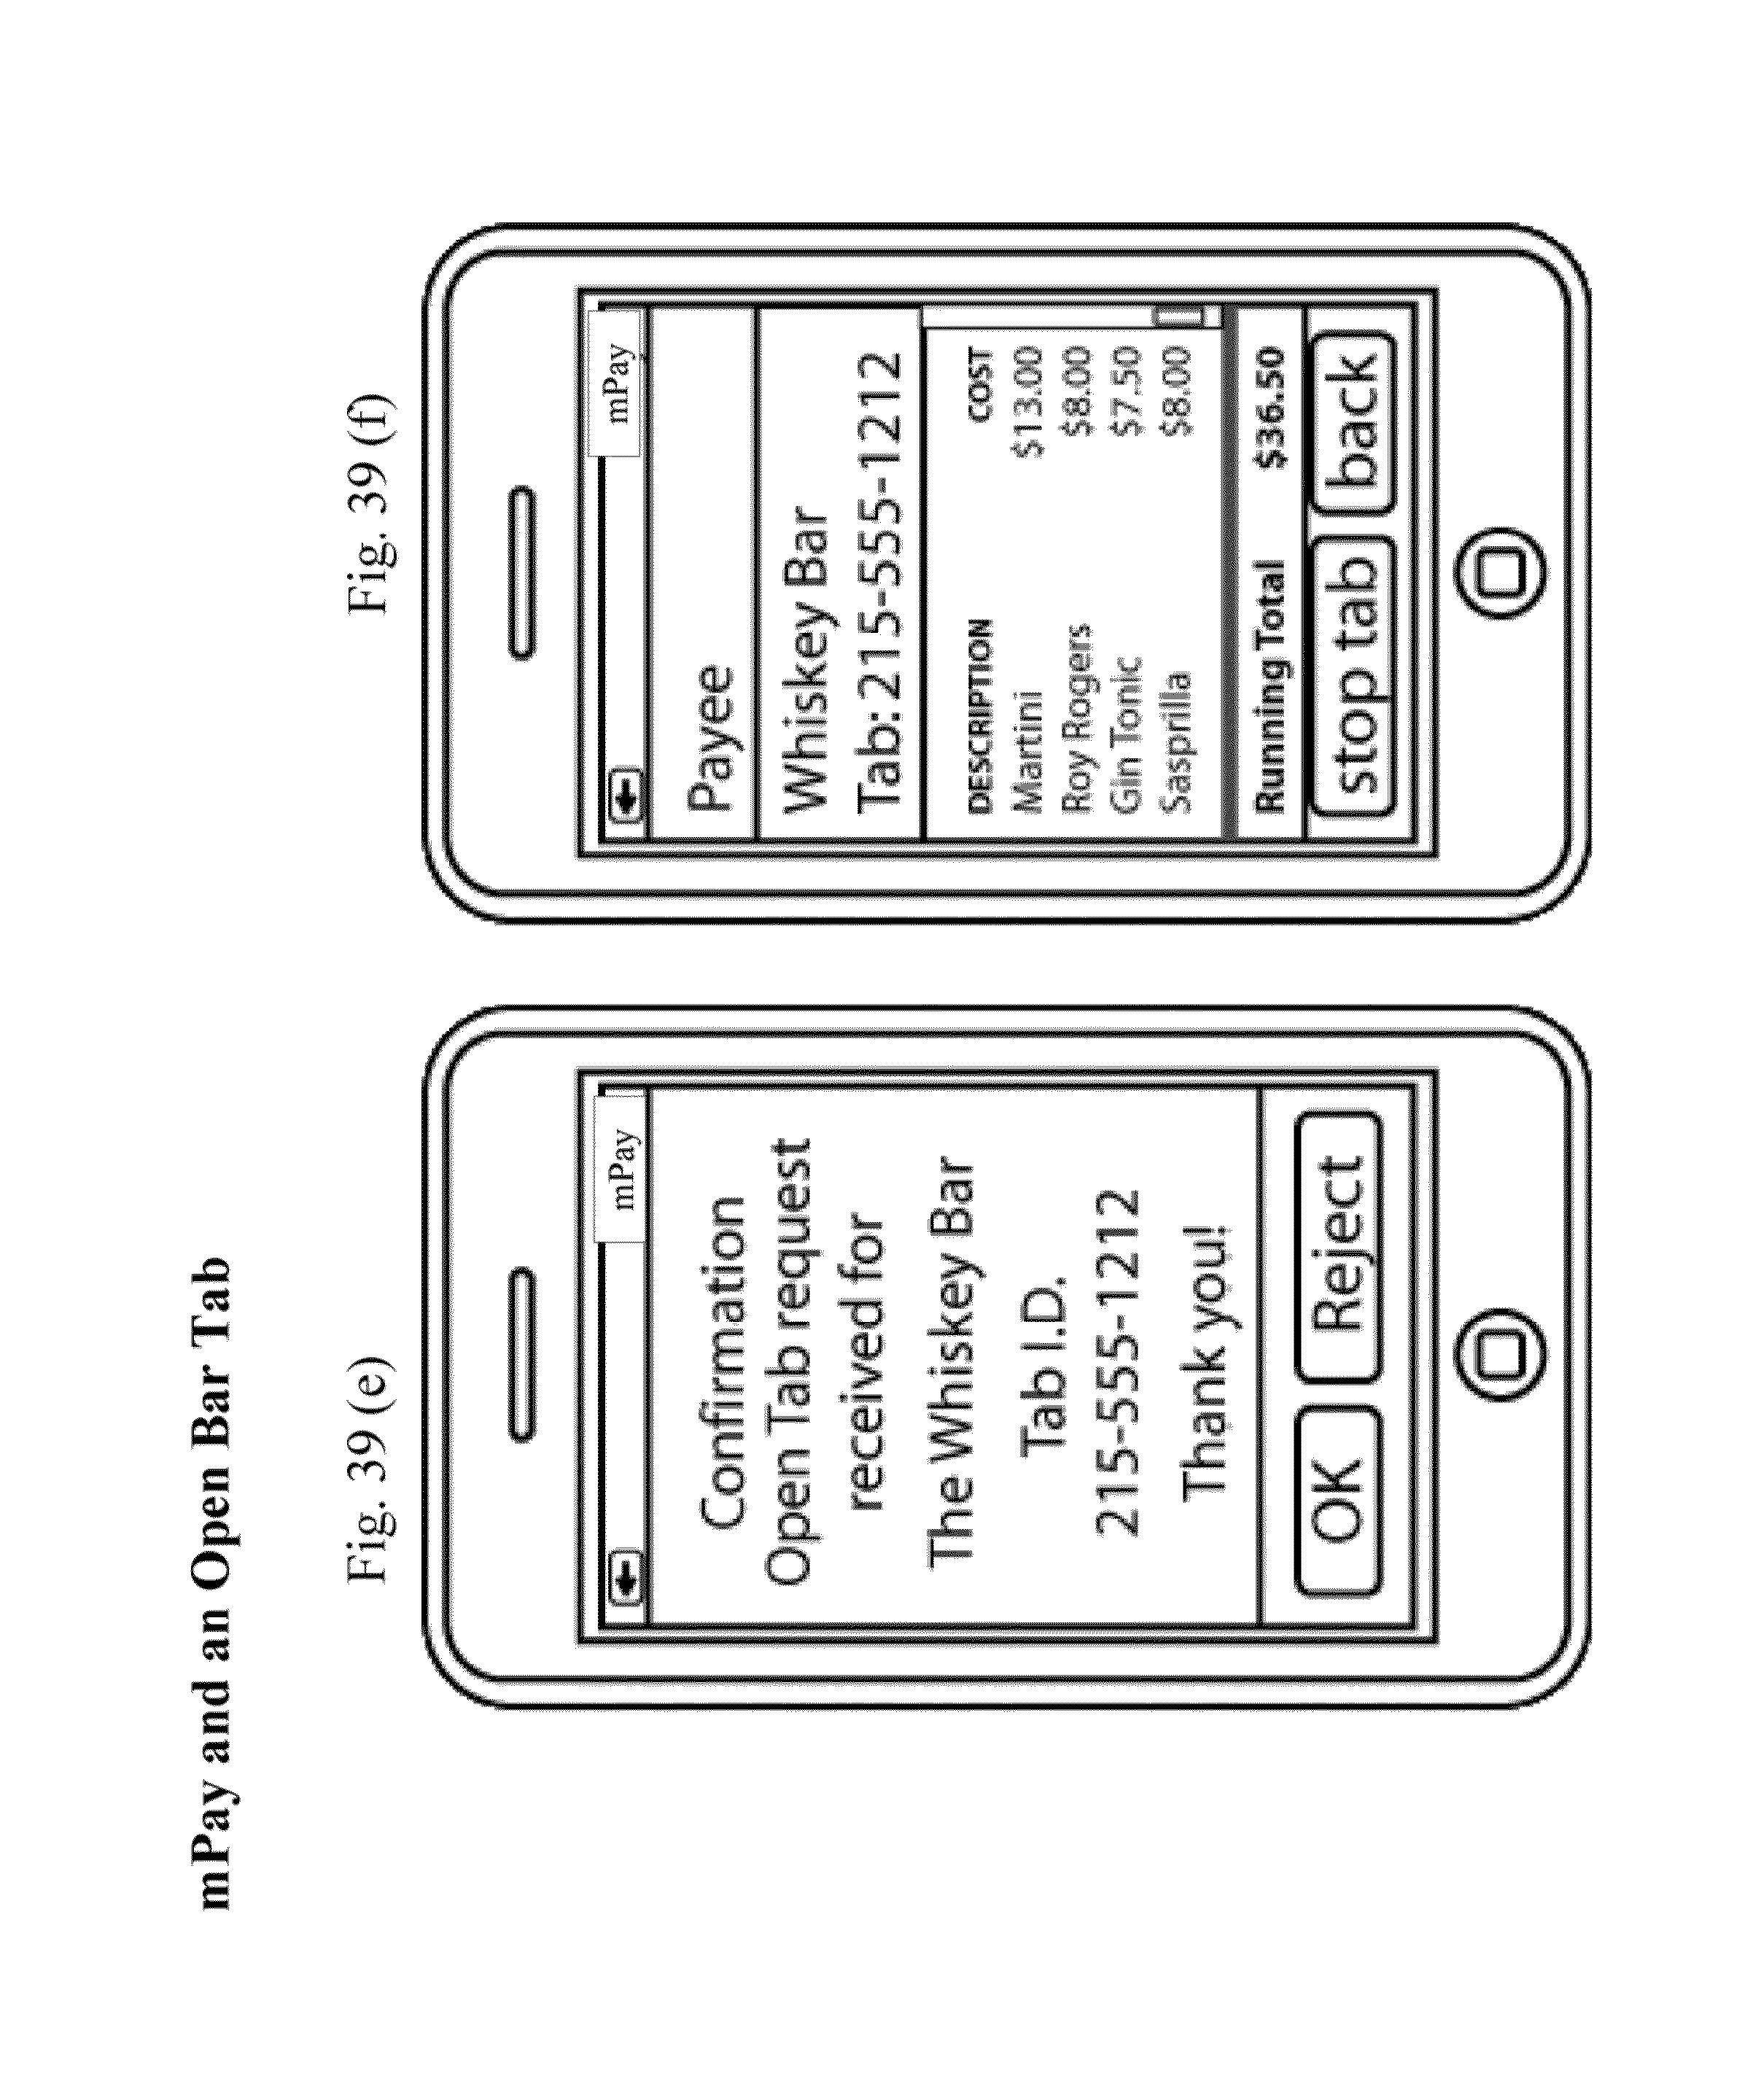 Patent Us 9230259 B1 555 Timer By Accessing The Enter Frequency And Duty Cycle Tab You Images